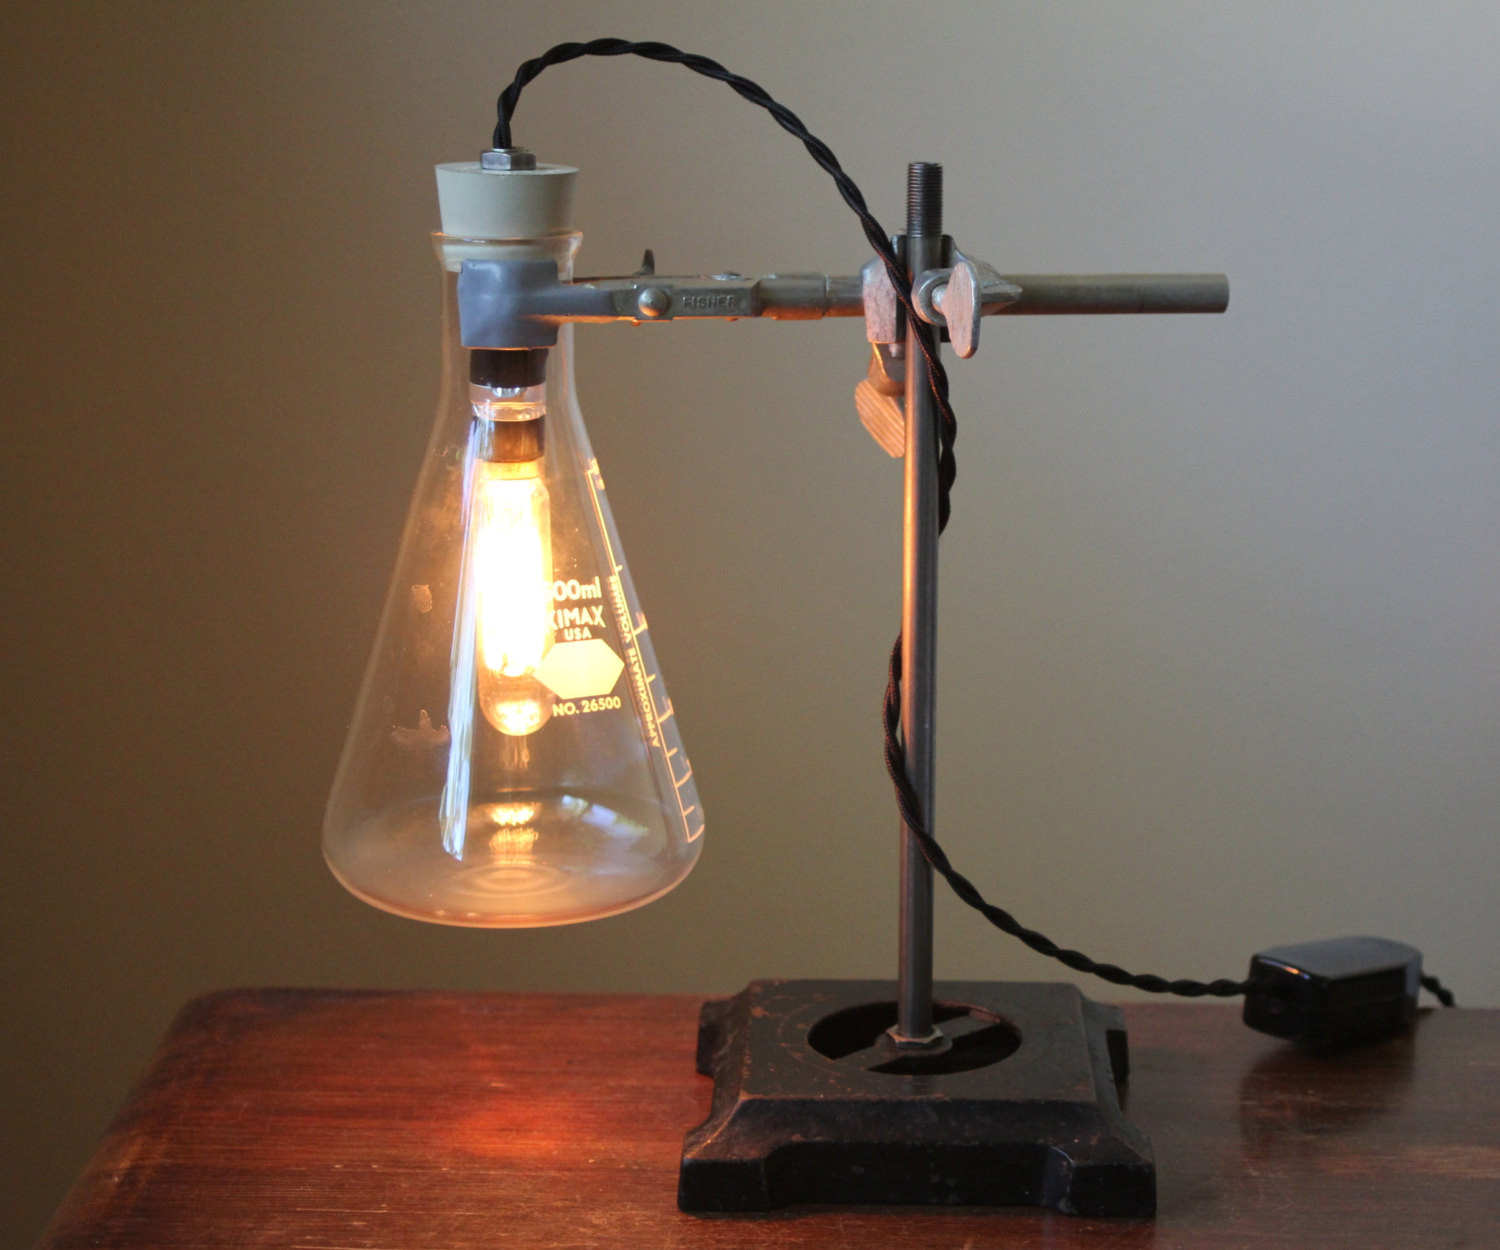 Best ideas about Industrial Desk Lamp . Save or Pin Industrial desk lamp Science lamp steampunk table lamp cool Now.